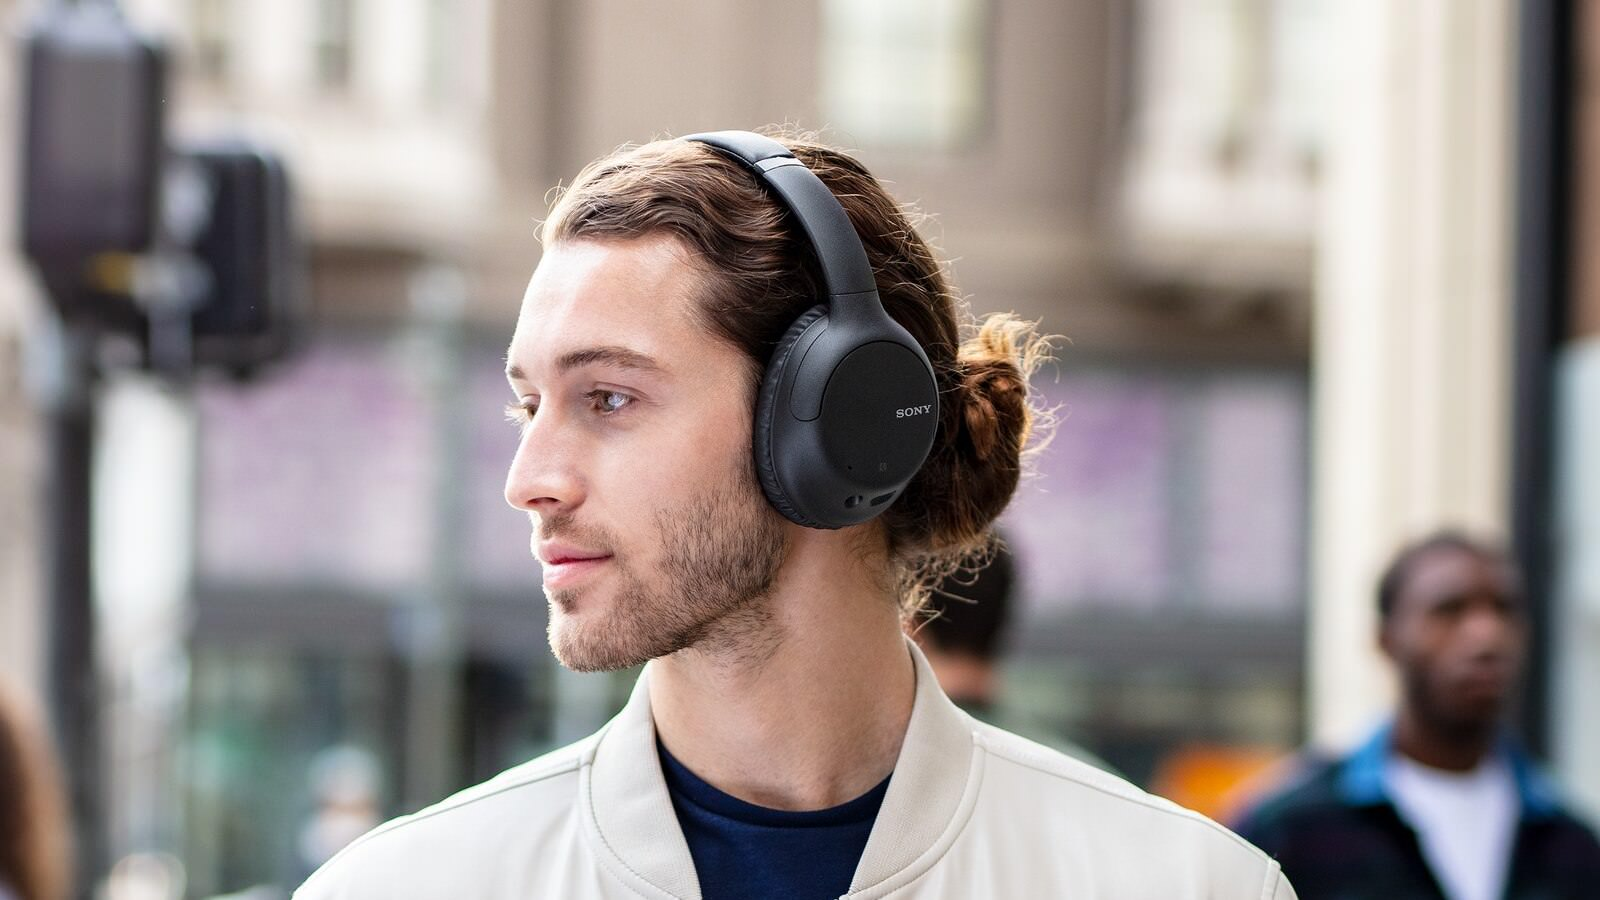 Sony WH-CH710N Noise Canceling Headphones - Lifestyle photo